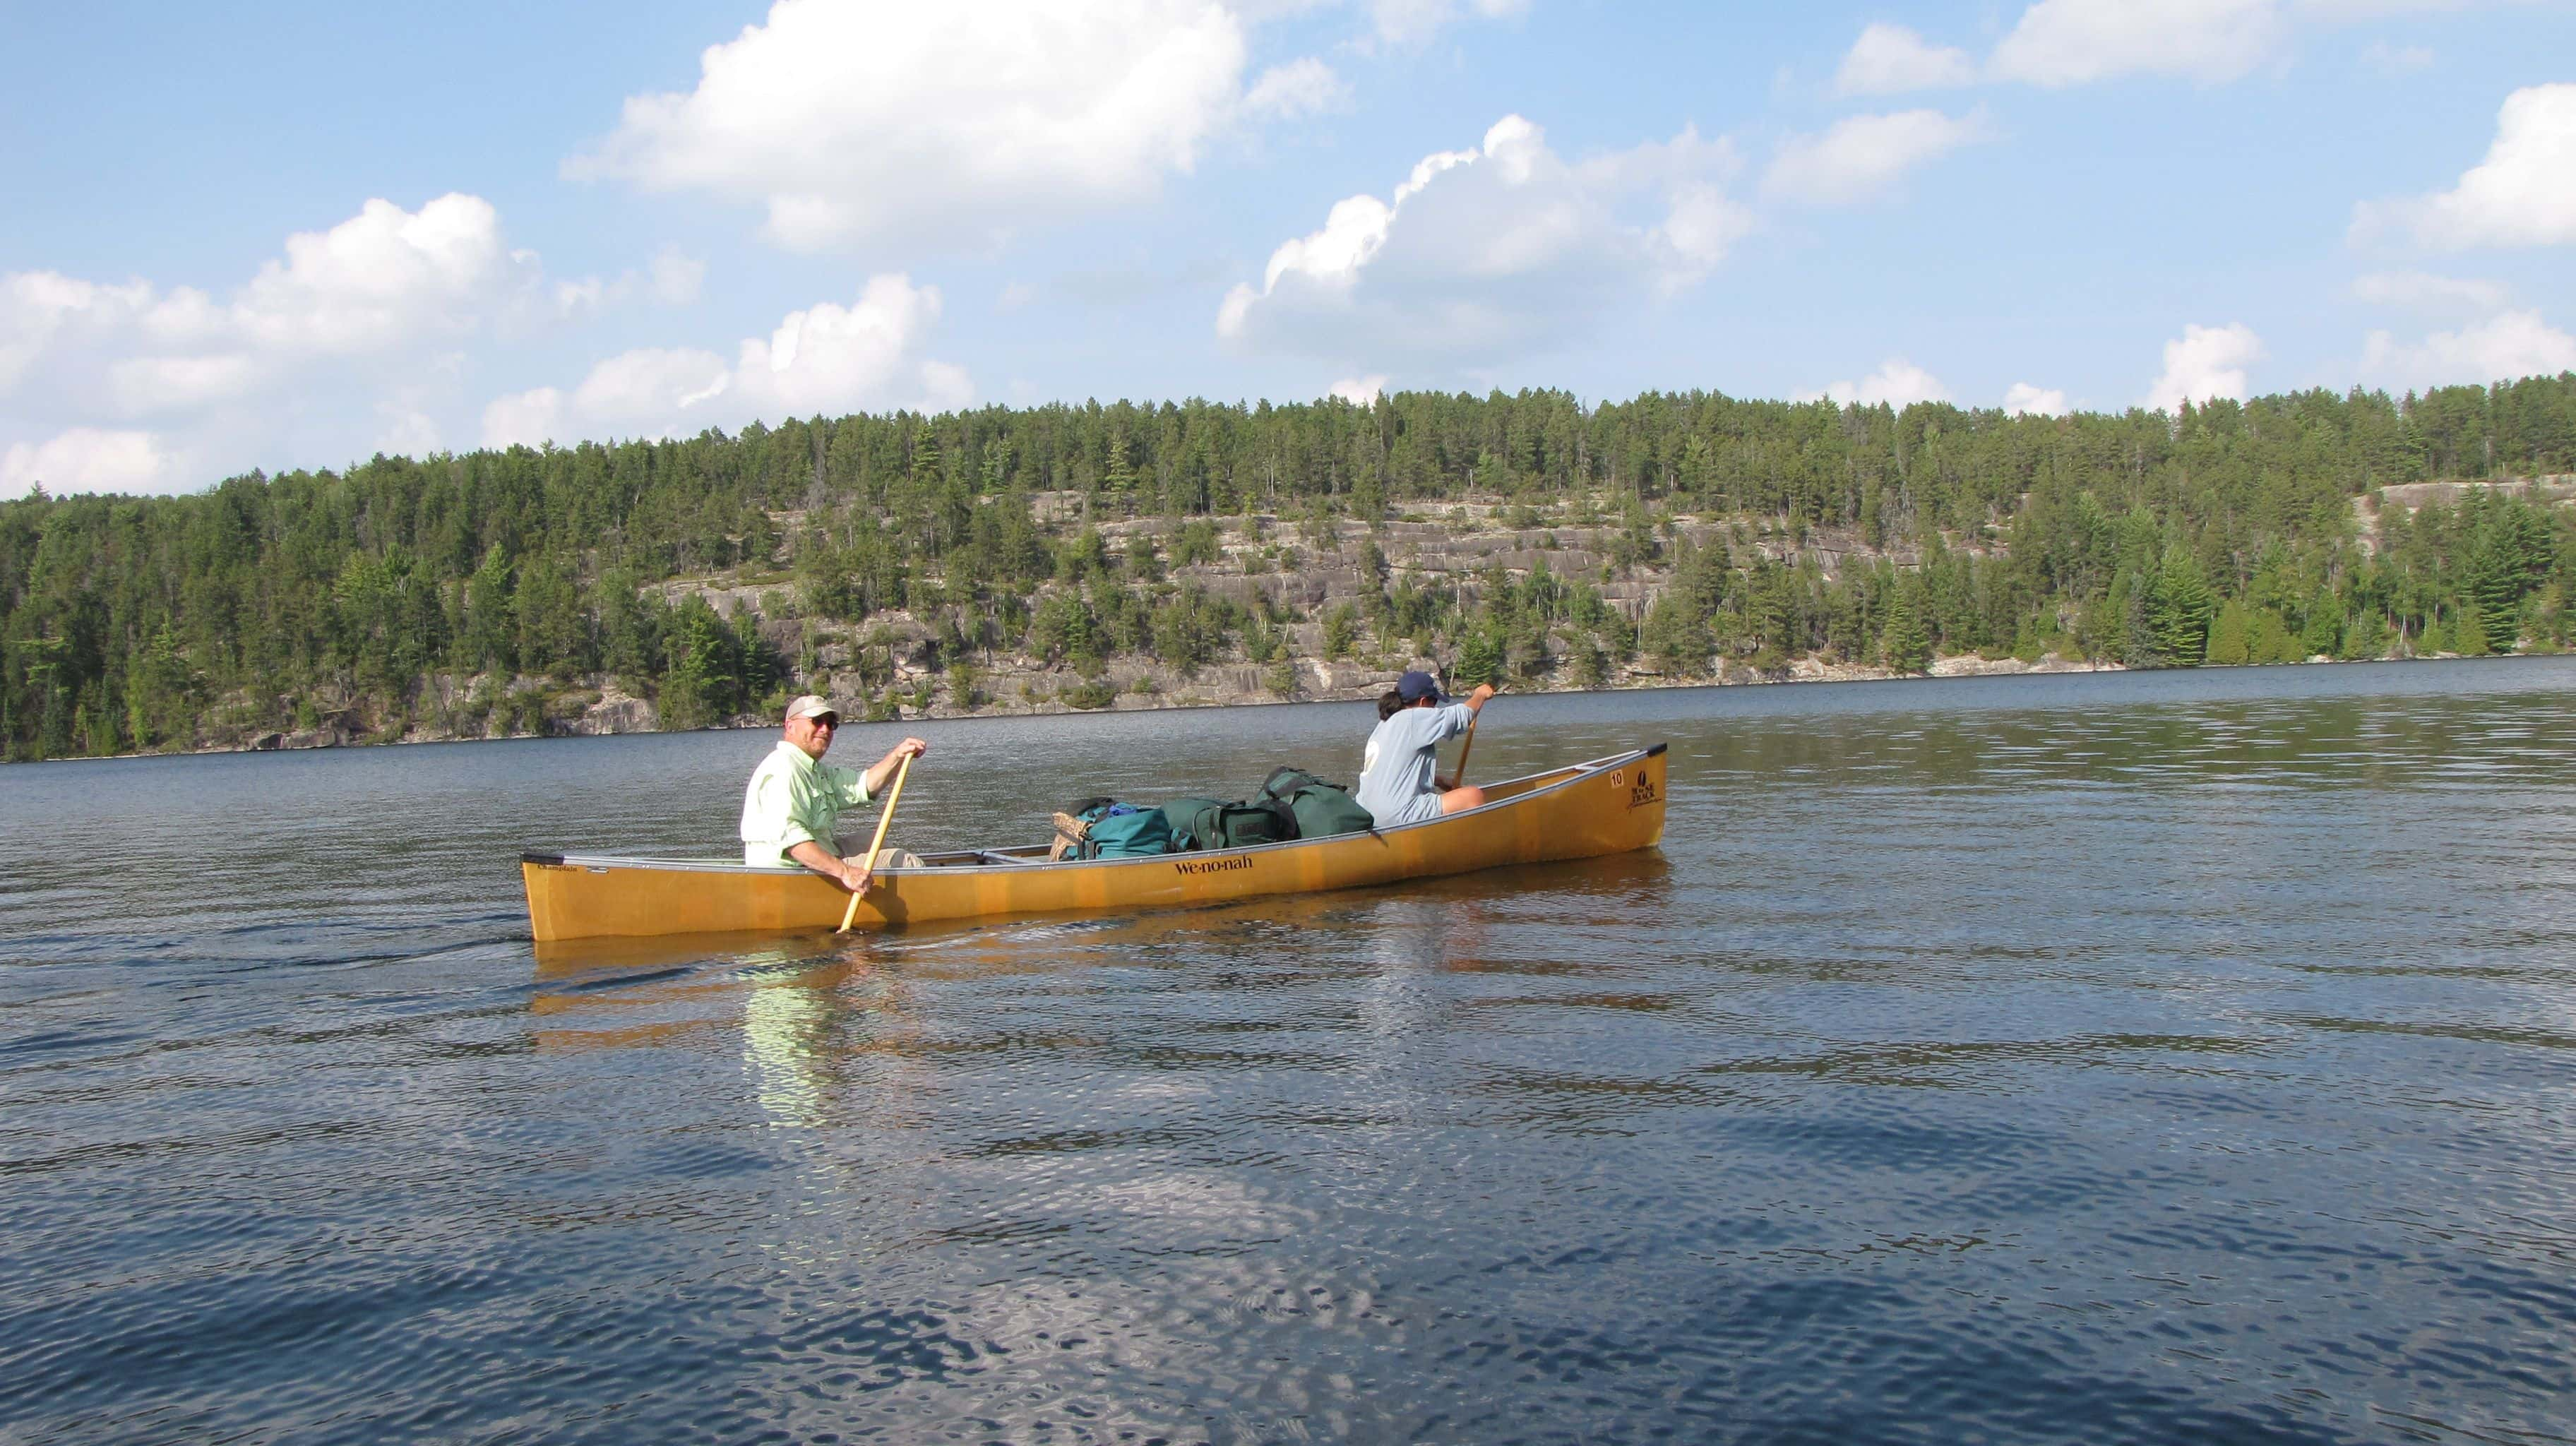 Camping and Canoeing Equipment Rental